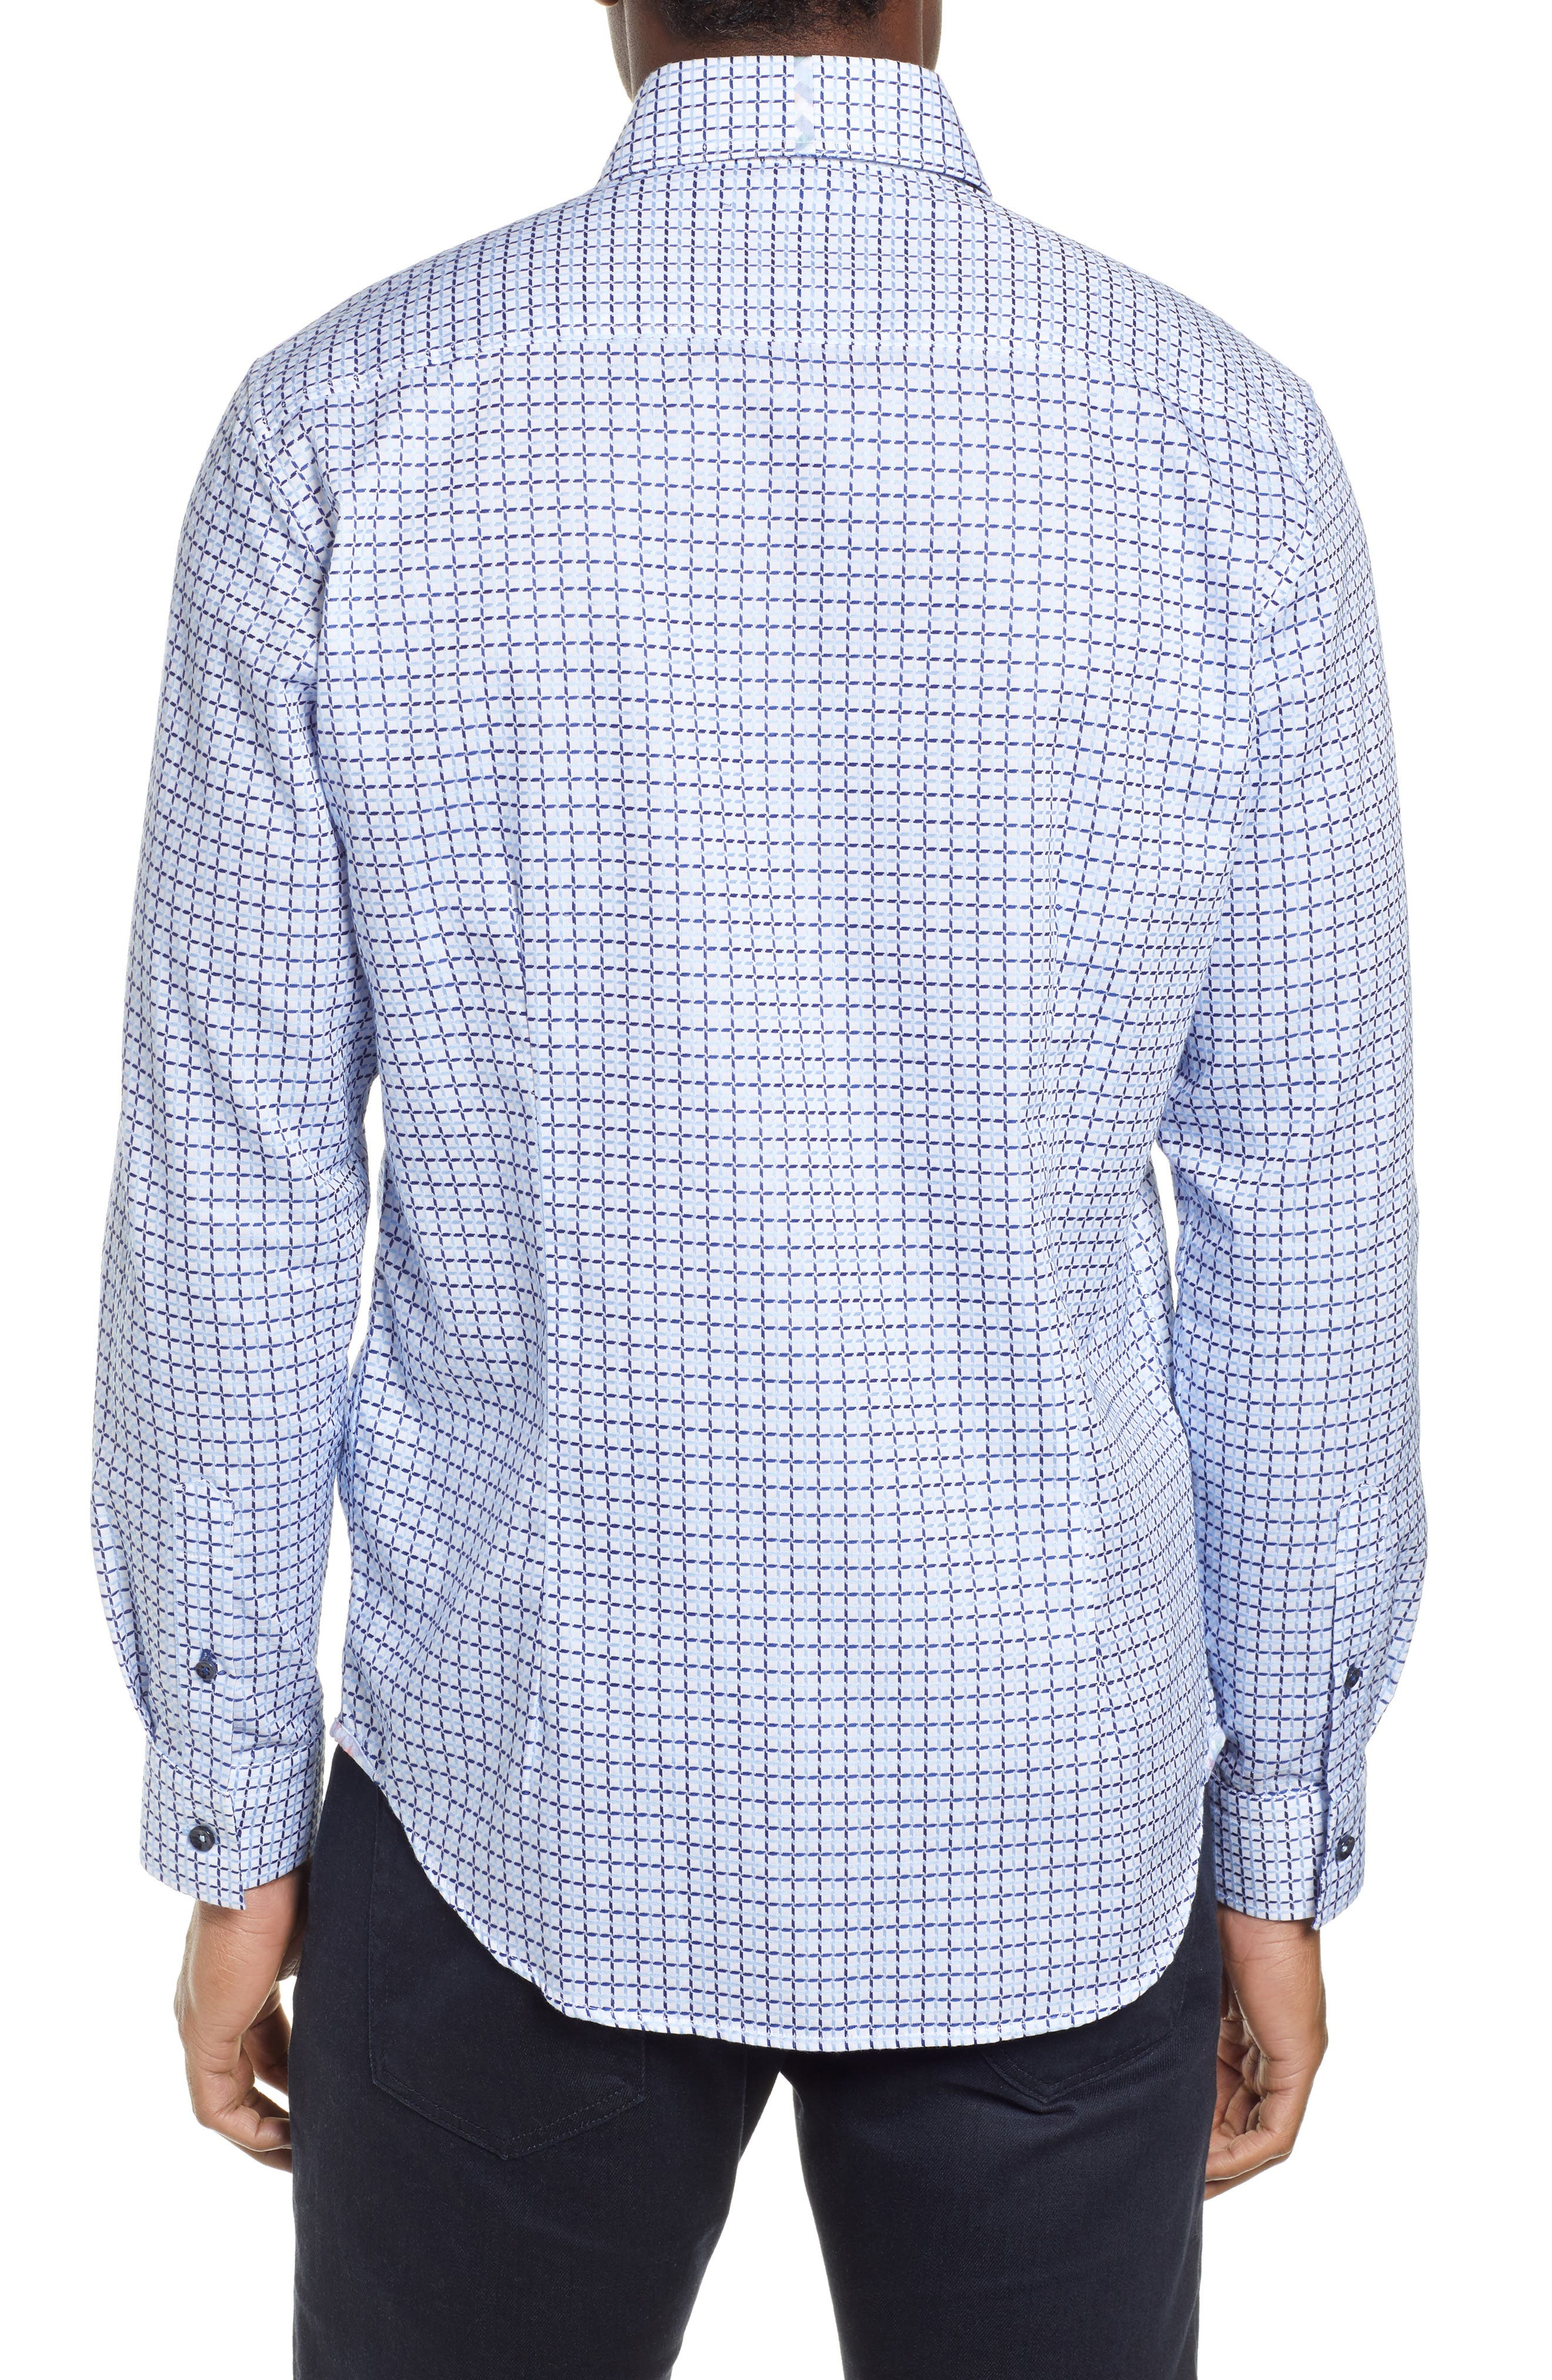 ROBERT GRAHAM,                             Axton Tailored Fit Check Sport Shirt,                             Alternate thumbnail 3, color,                             BLUE